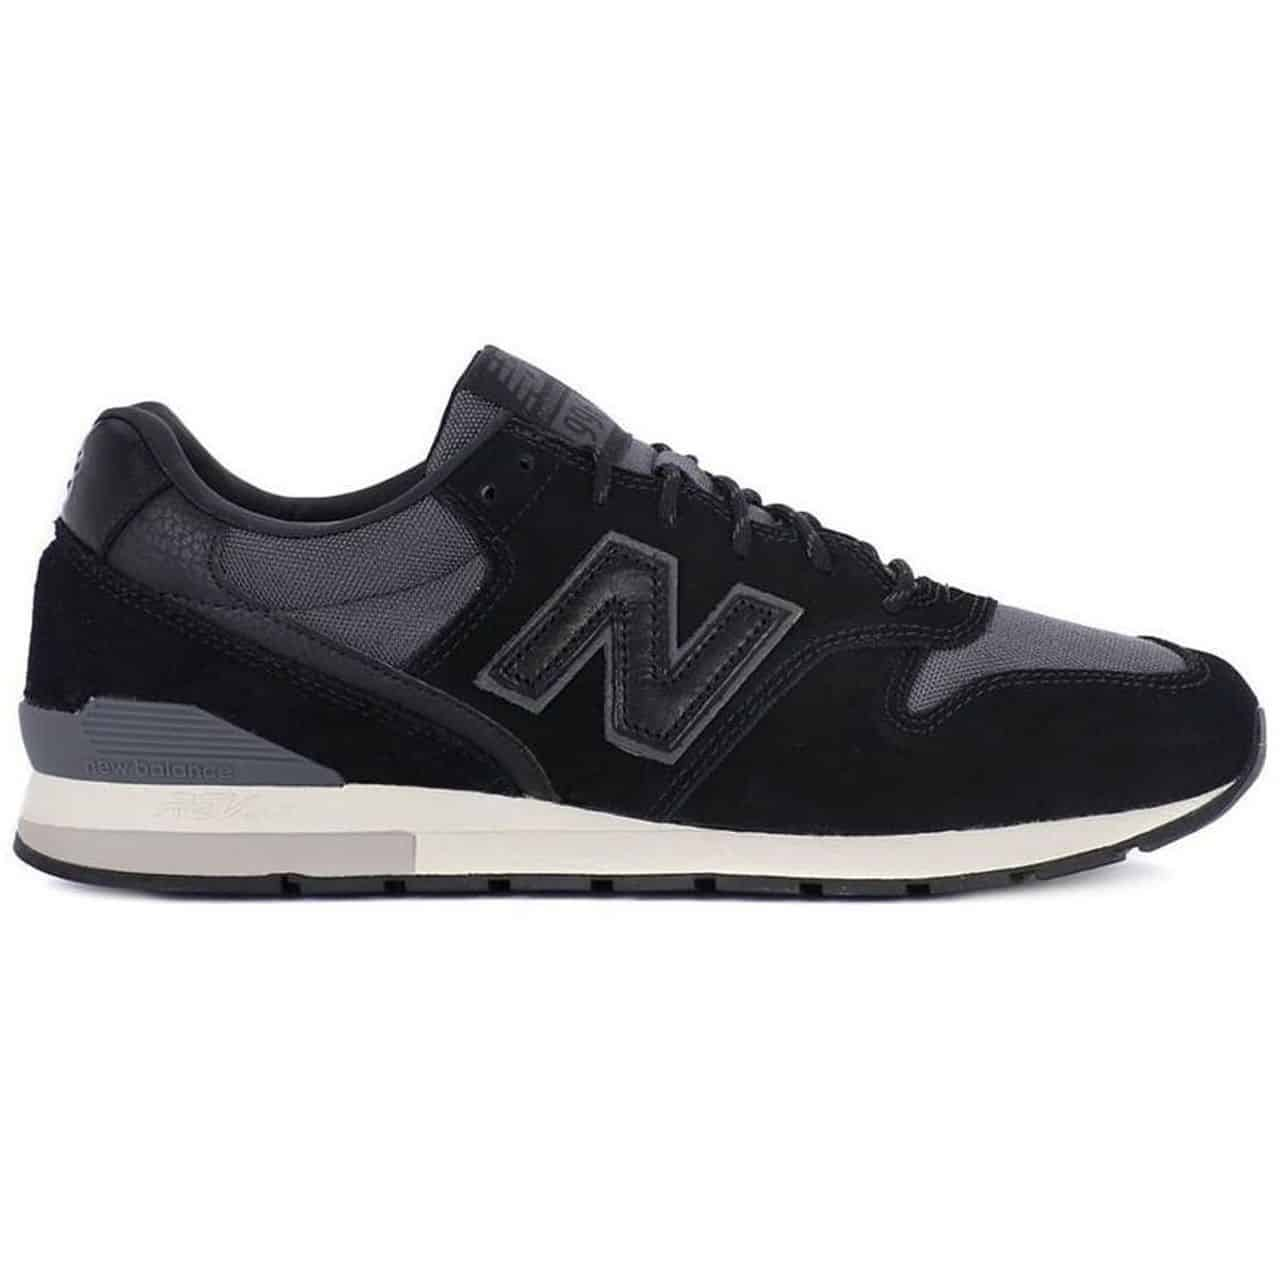 ADIDASI NEW BALANCE LIFESTYLE - MRL996MS 1